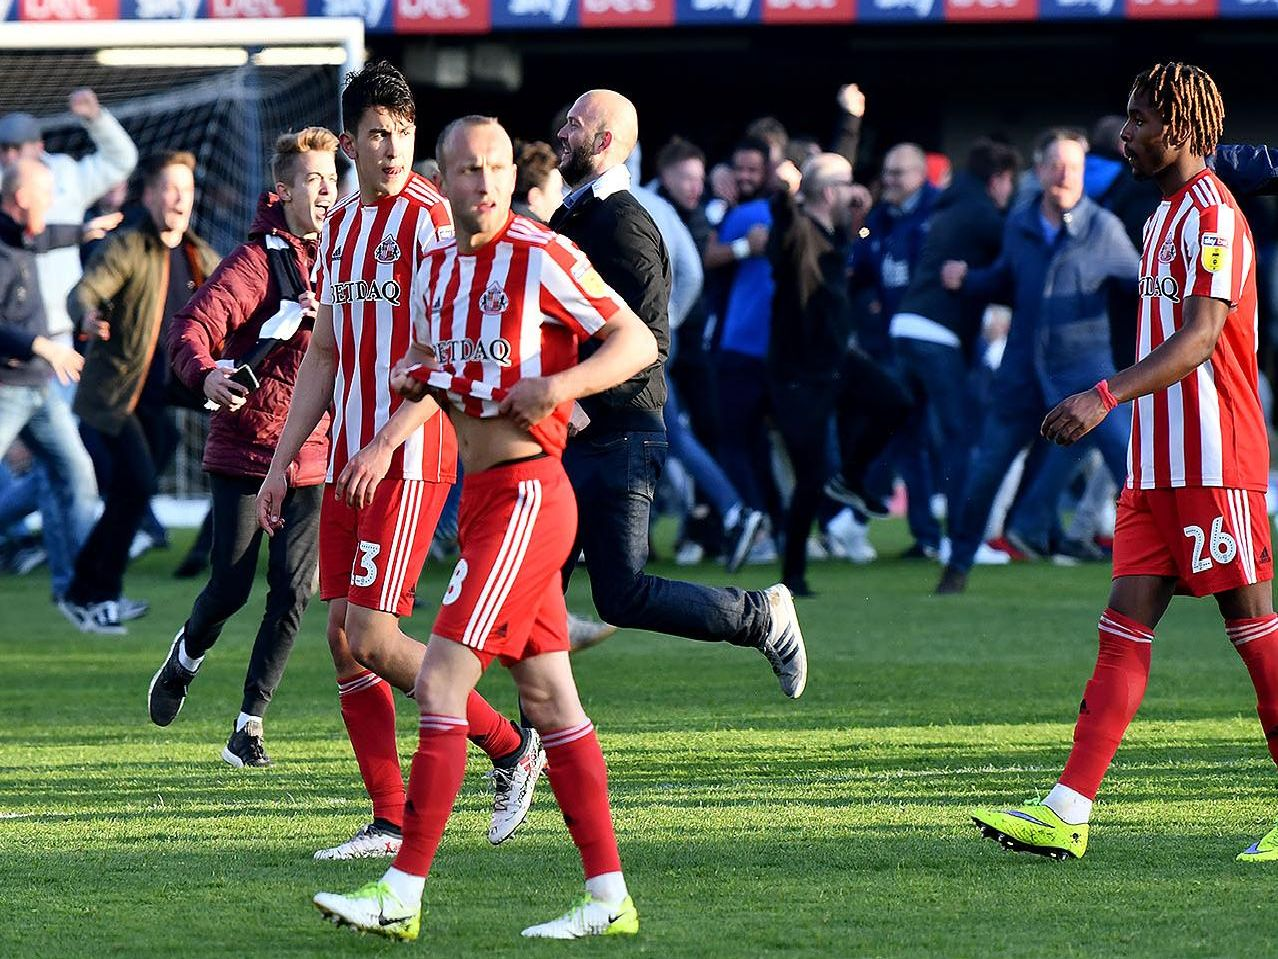 Sunderland's fifth place finish looks to be bad news - here's why